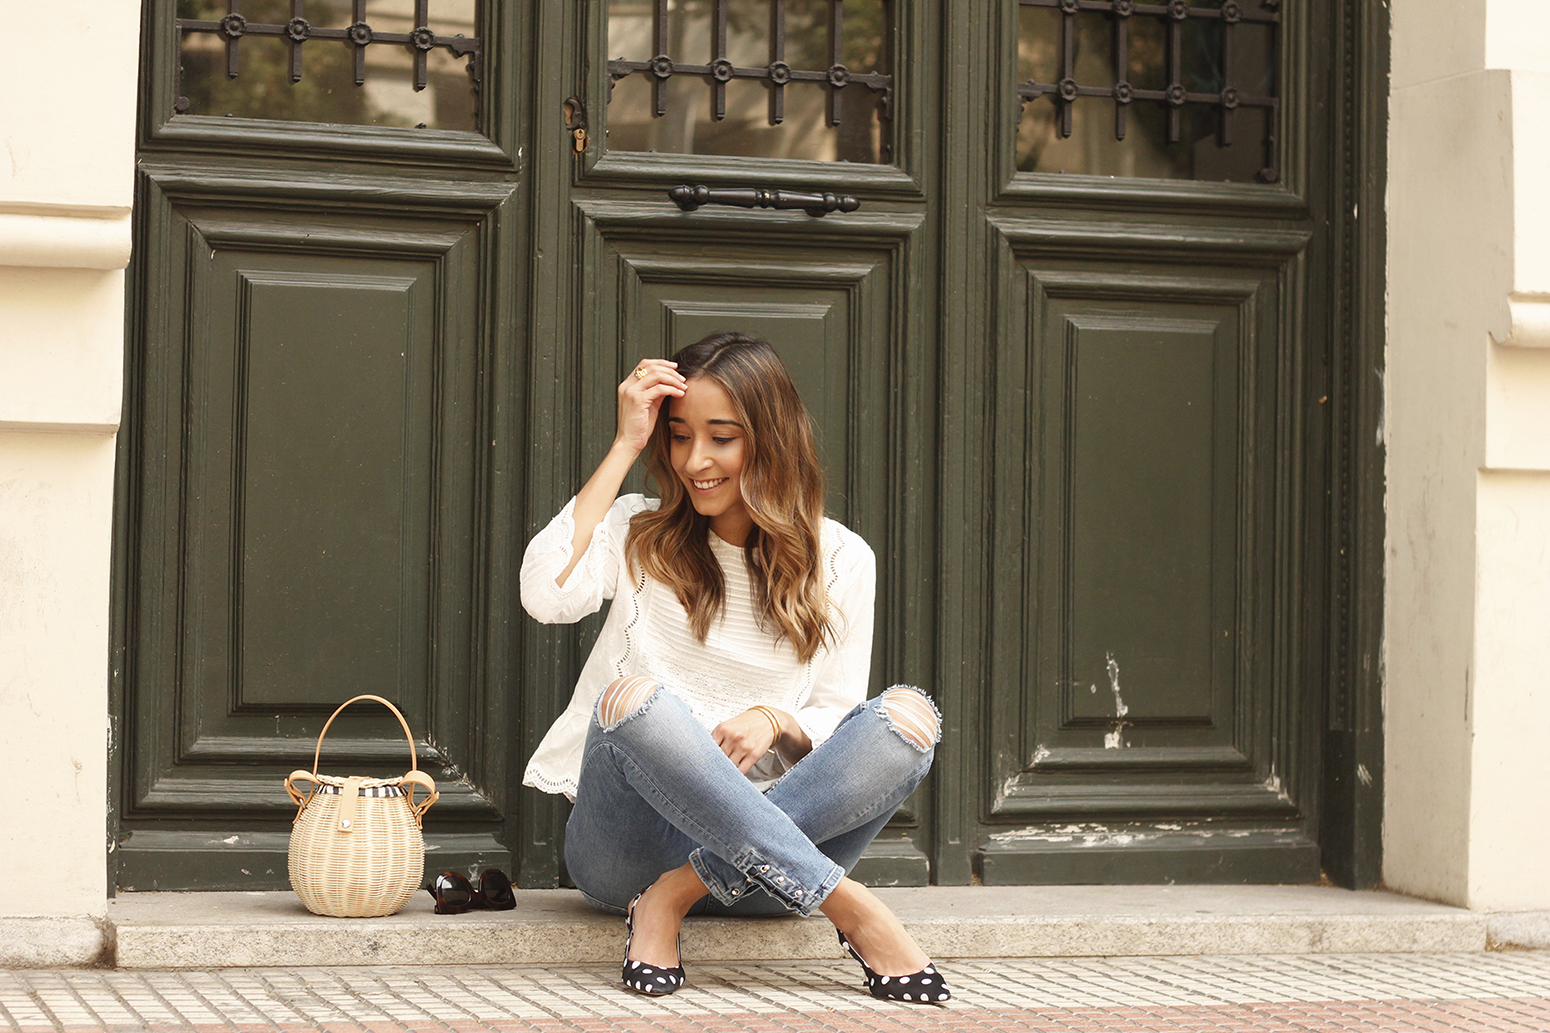 polka dot kitten heels white blouse ripped jeans outfit girl style fashion13